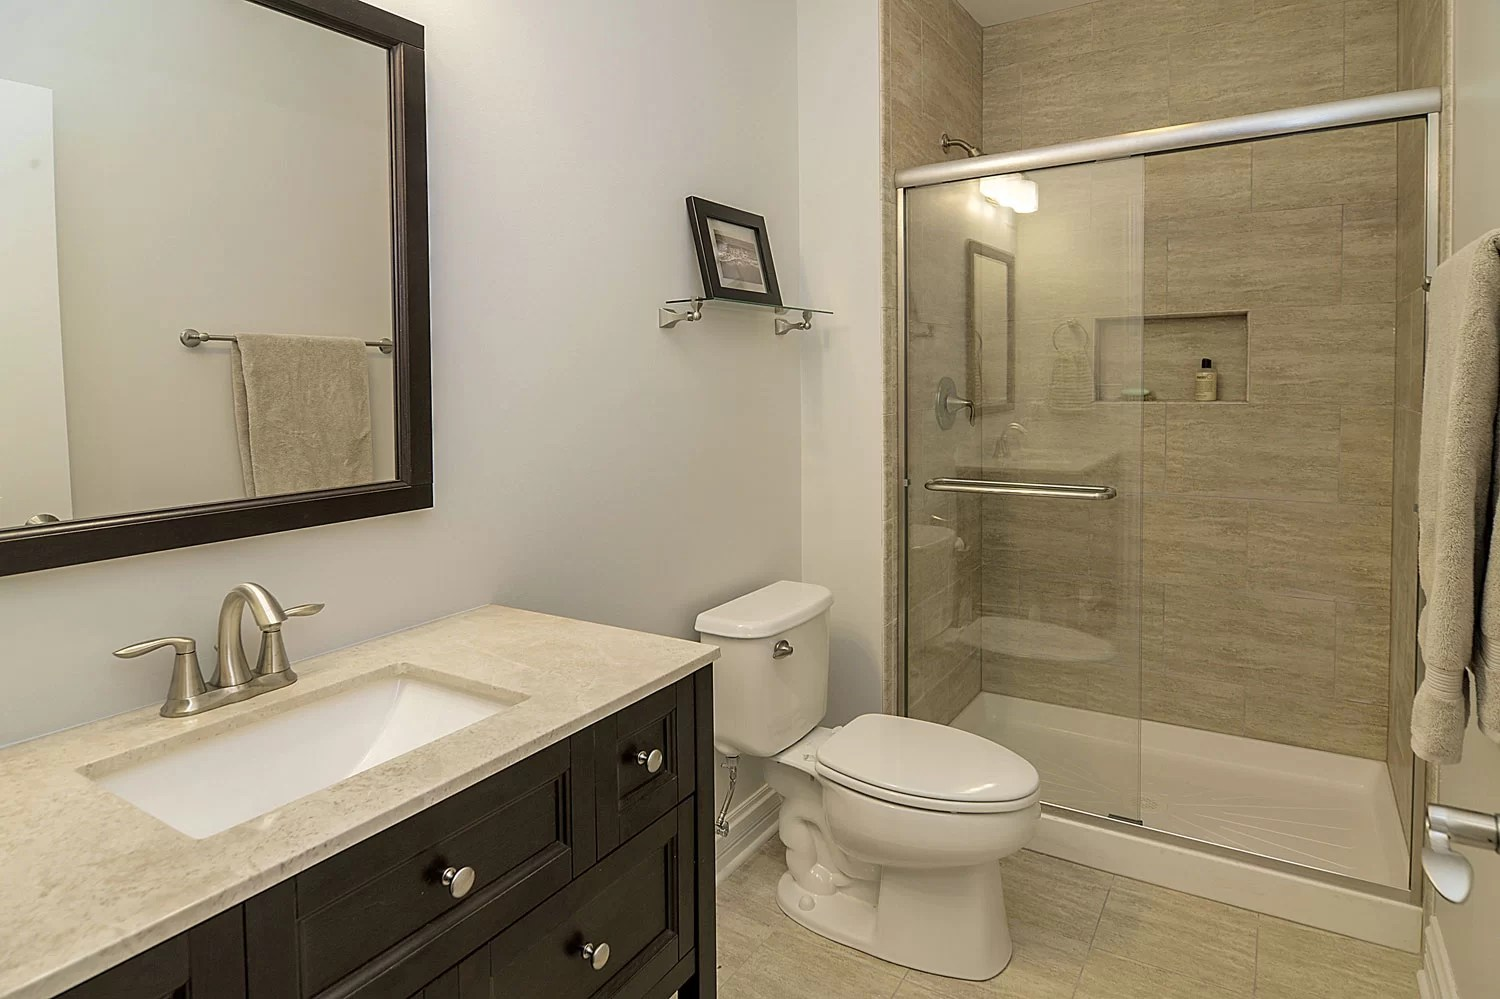 Steve & Emily's Hall Bathroom Remodel Pictures | Home ... on Bathroom Remodel Design Ideas  id=15303